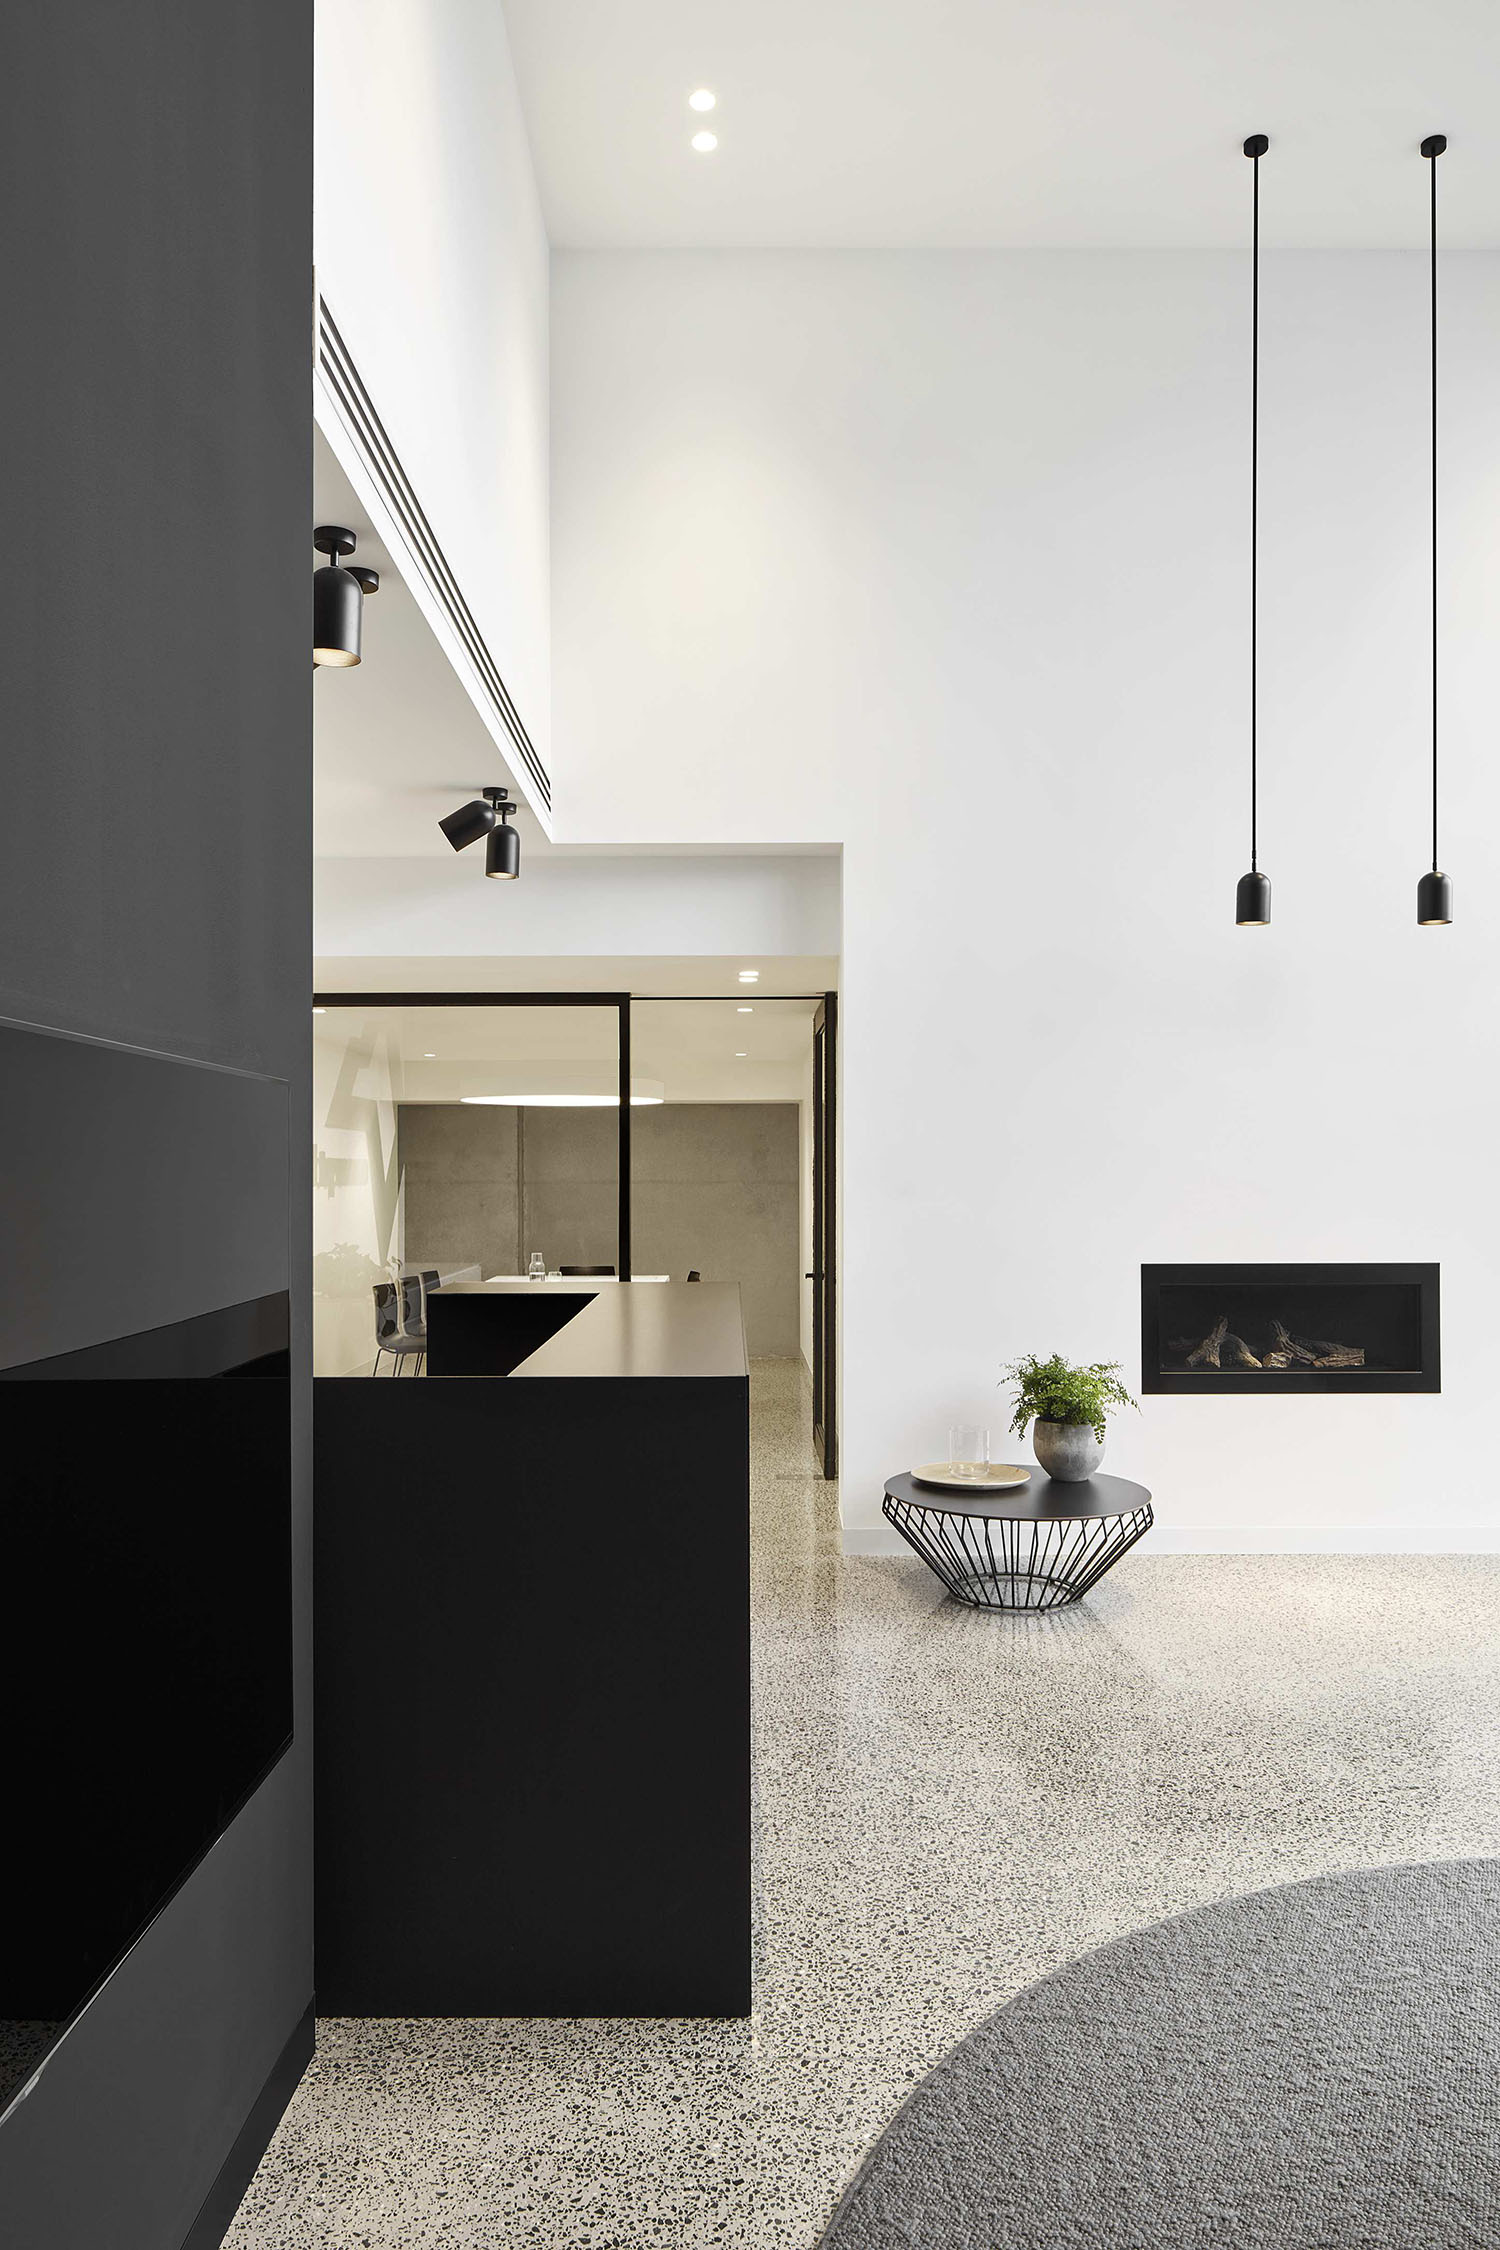 Concept Build Office by Nixon Tulloch Fortey - Photographed by Jack Lovel - VIC, Australia - Interior Architecture - Image 3